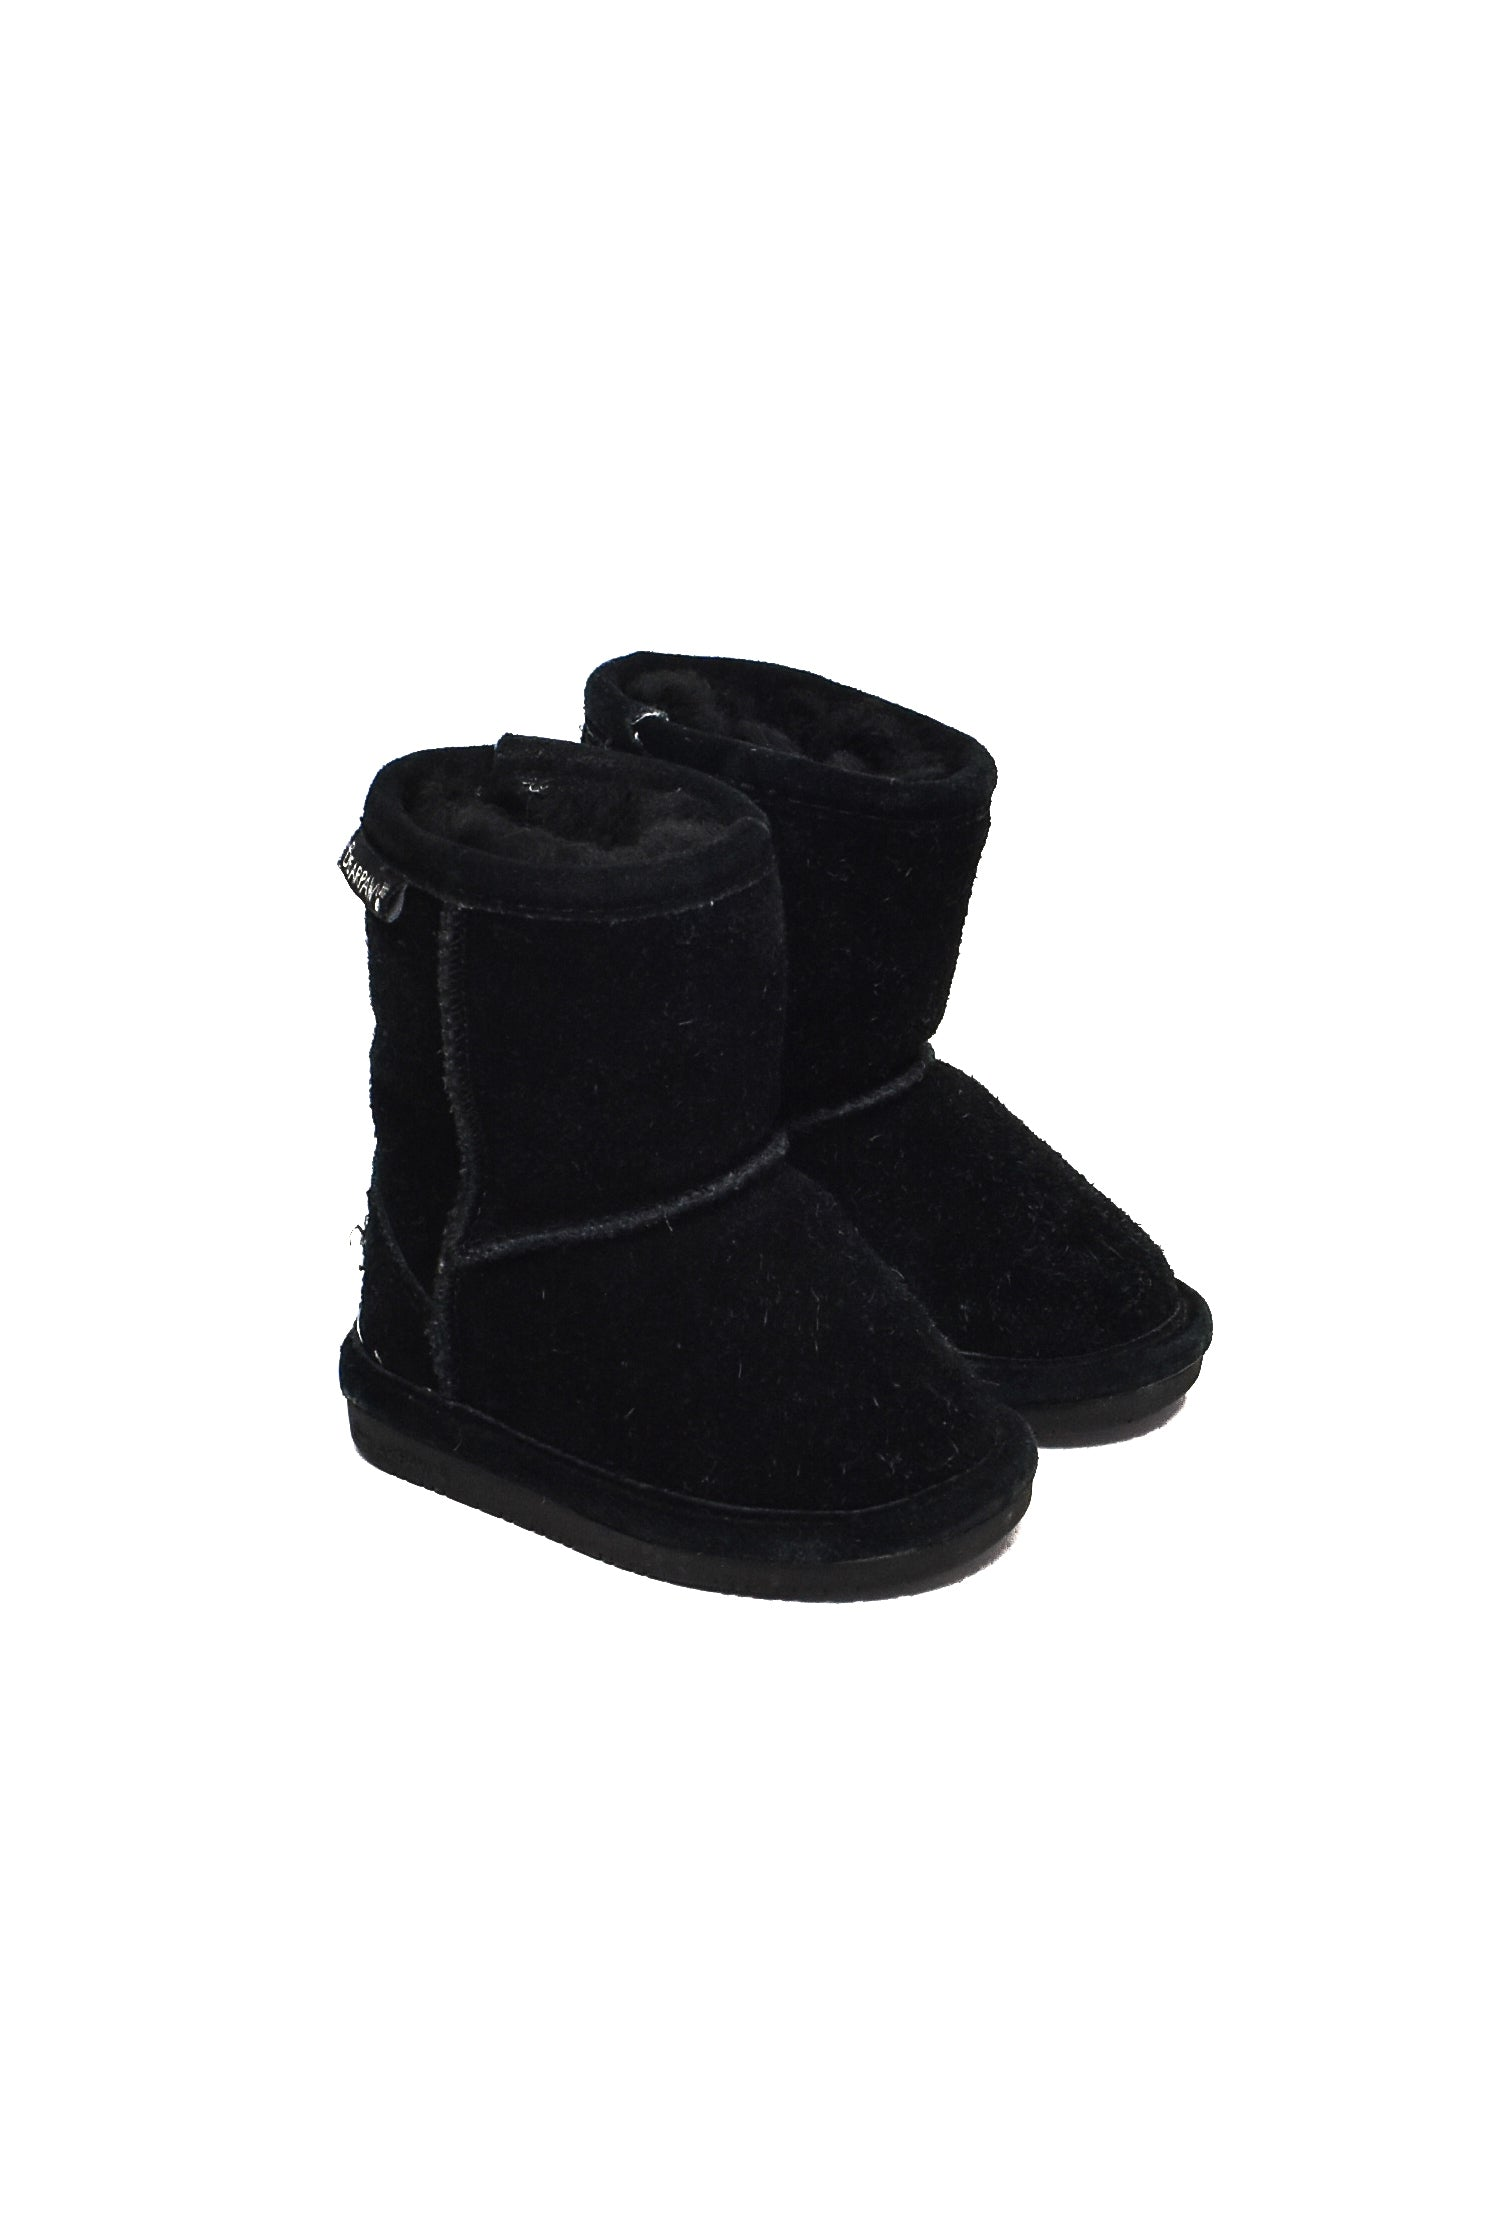 10006452 Bearpaw Baby~Boots 12-18M at Retykle